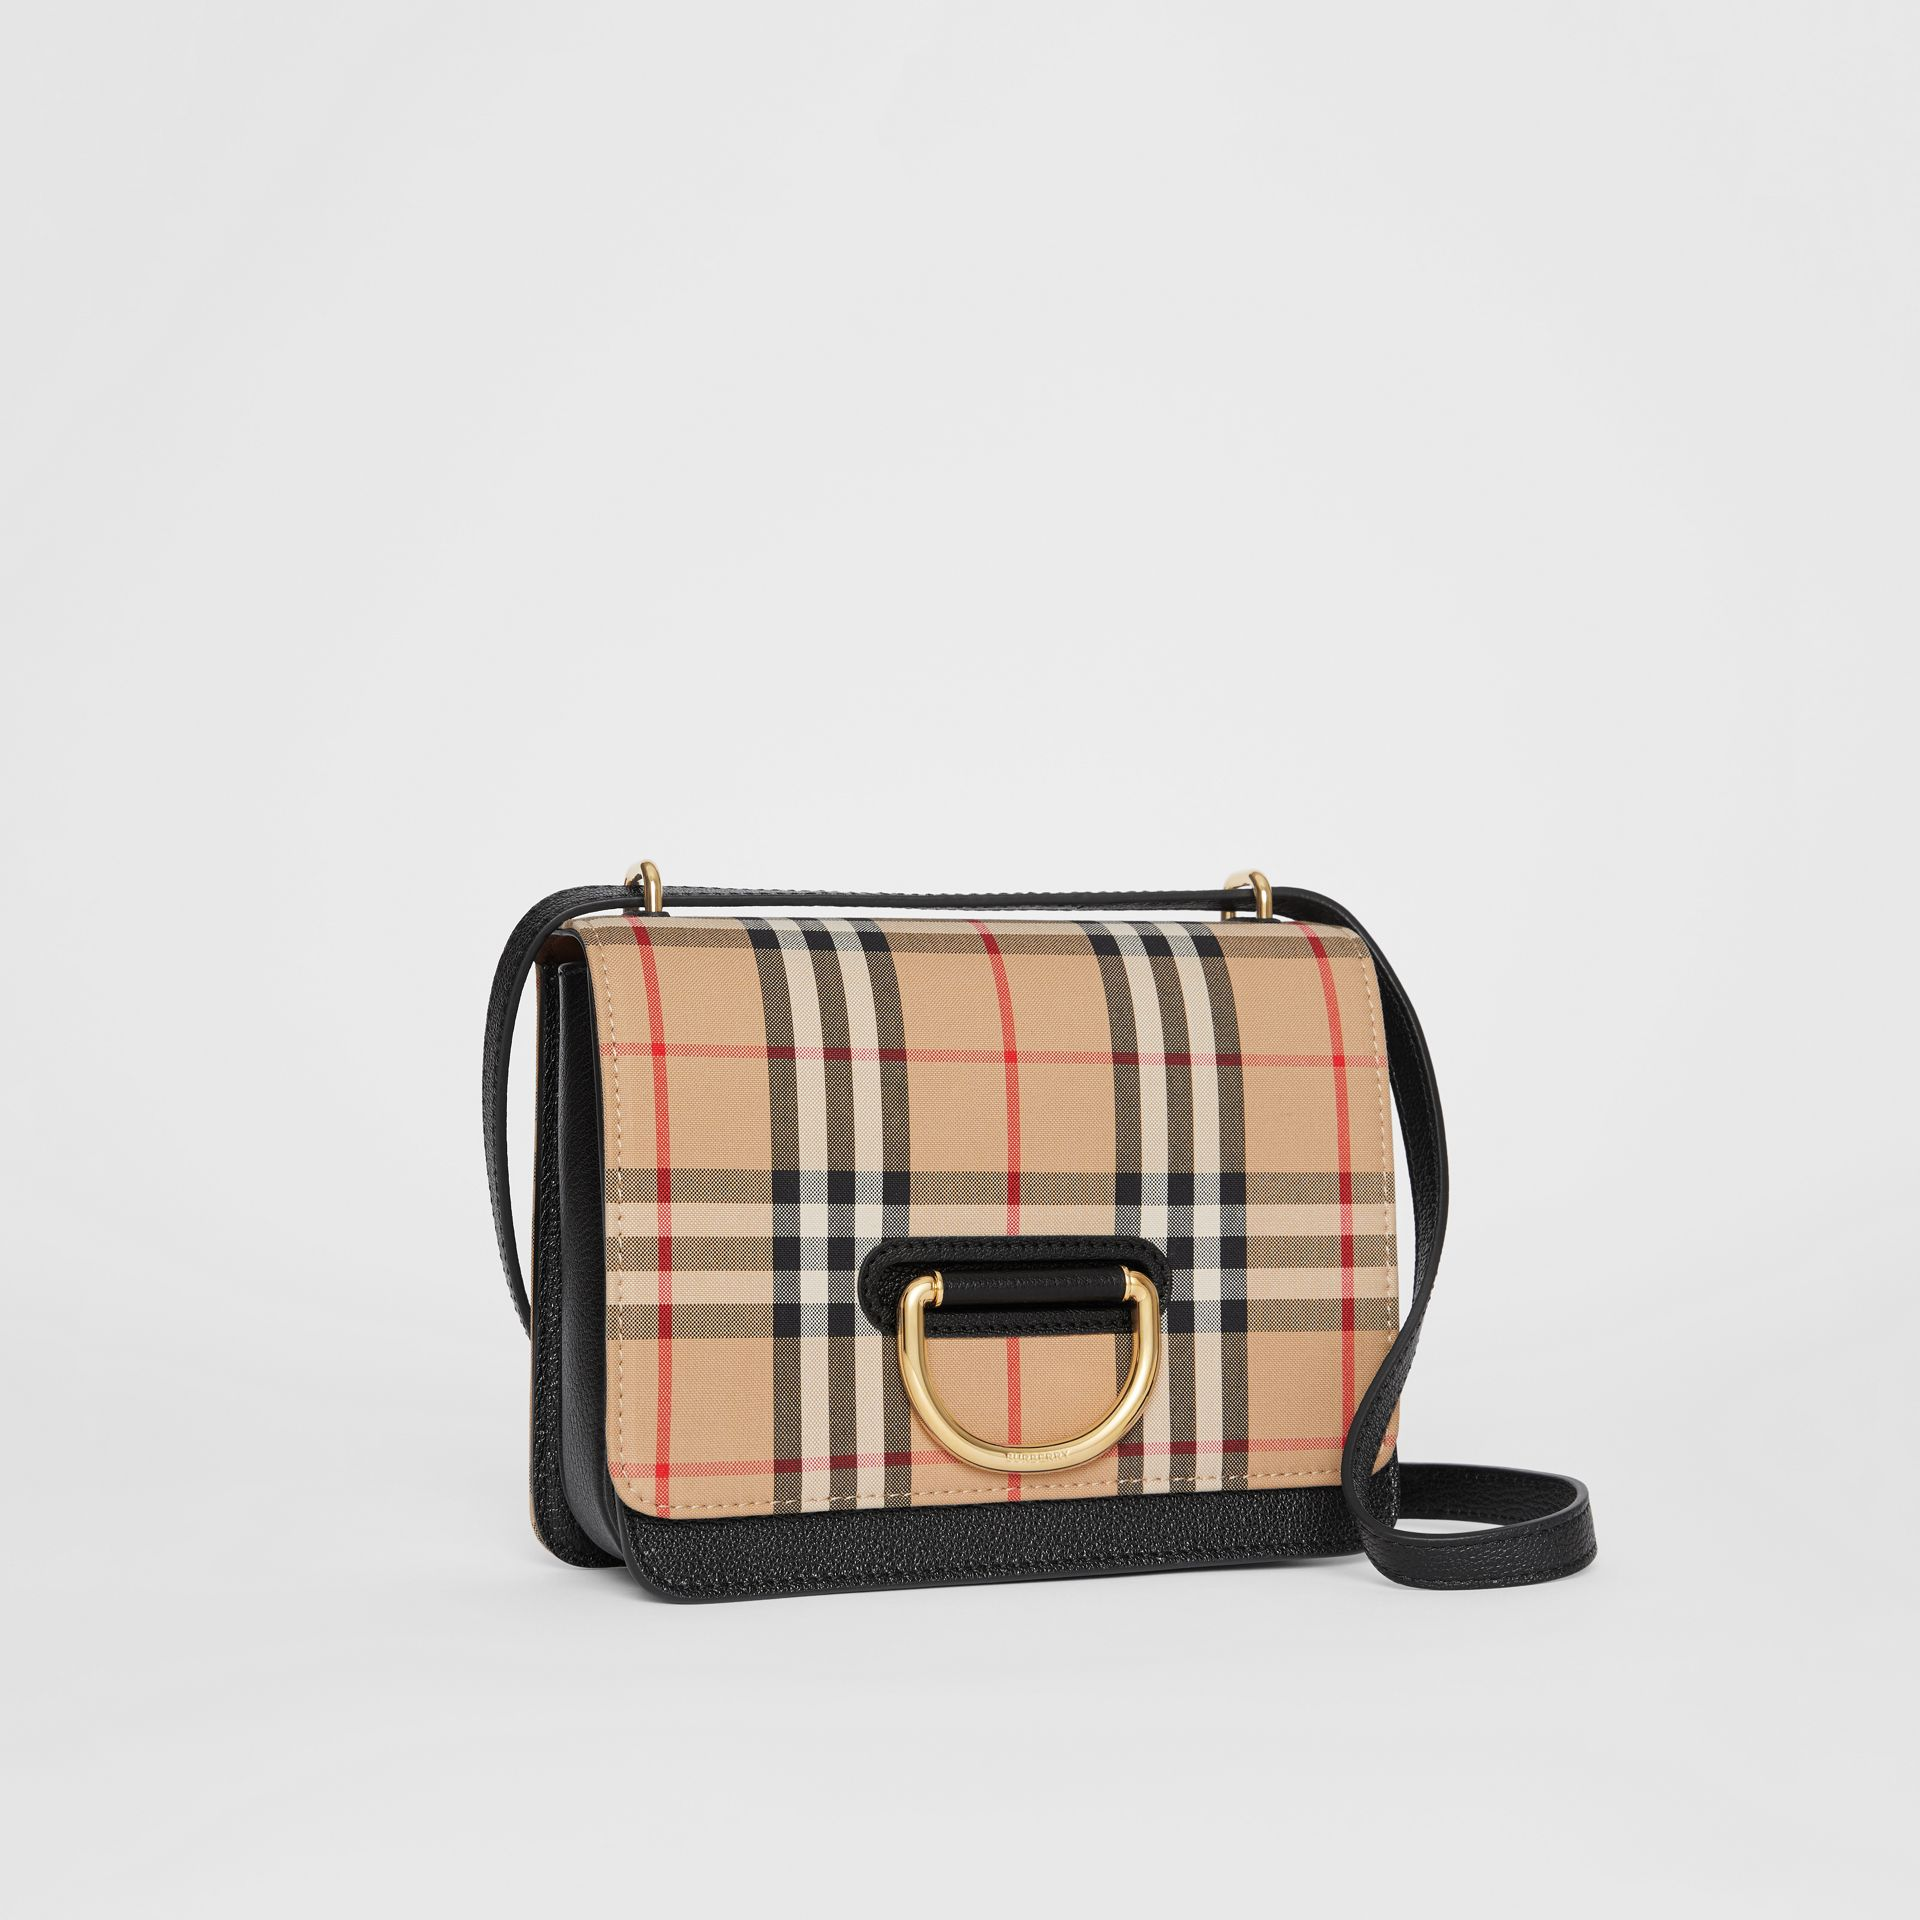 The Small Vintage Check and Leather D-ring Bag in Black - Women | Burberry United States - gallery image 9